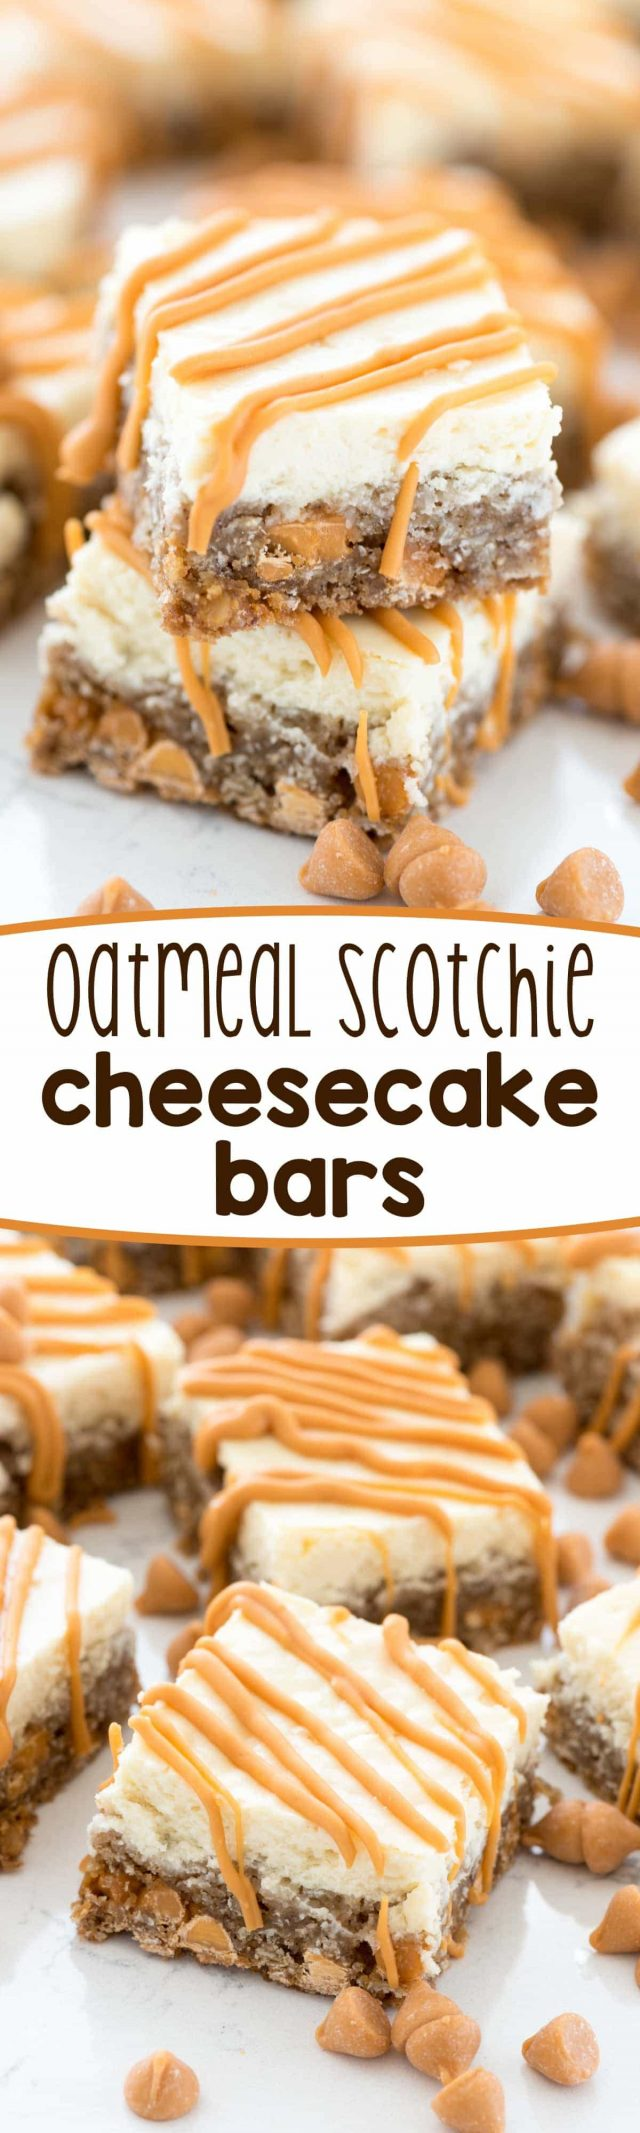 collage of oatmeal scotchie cheesecake bars